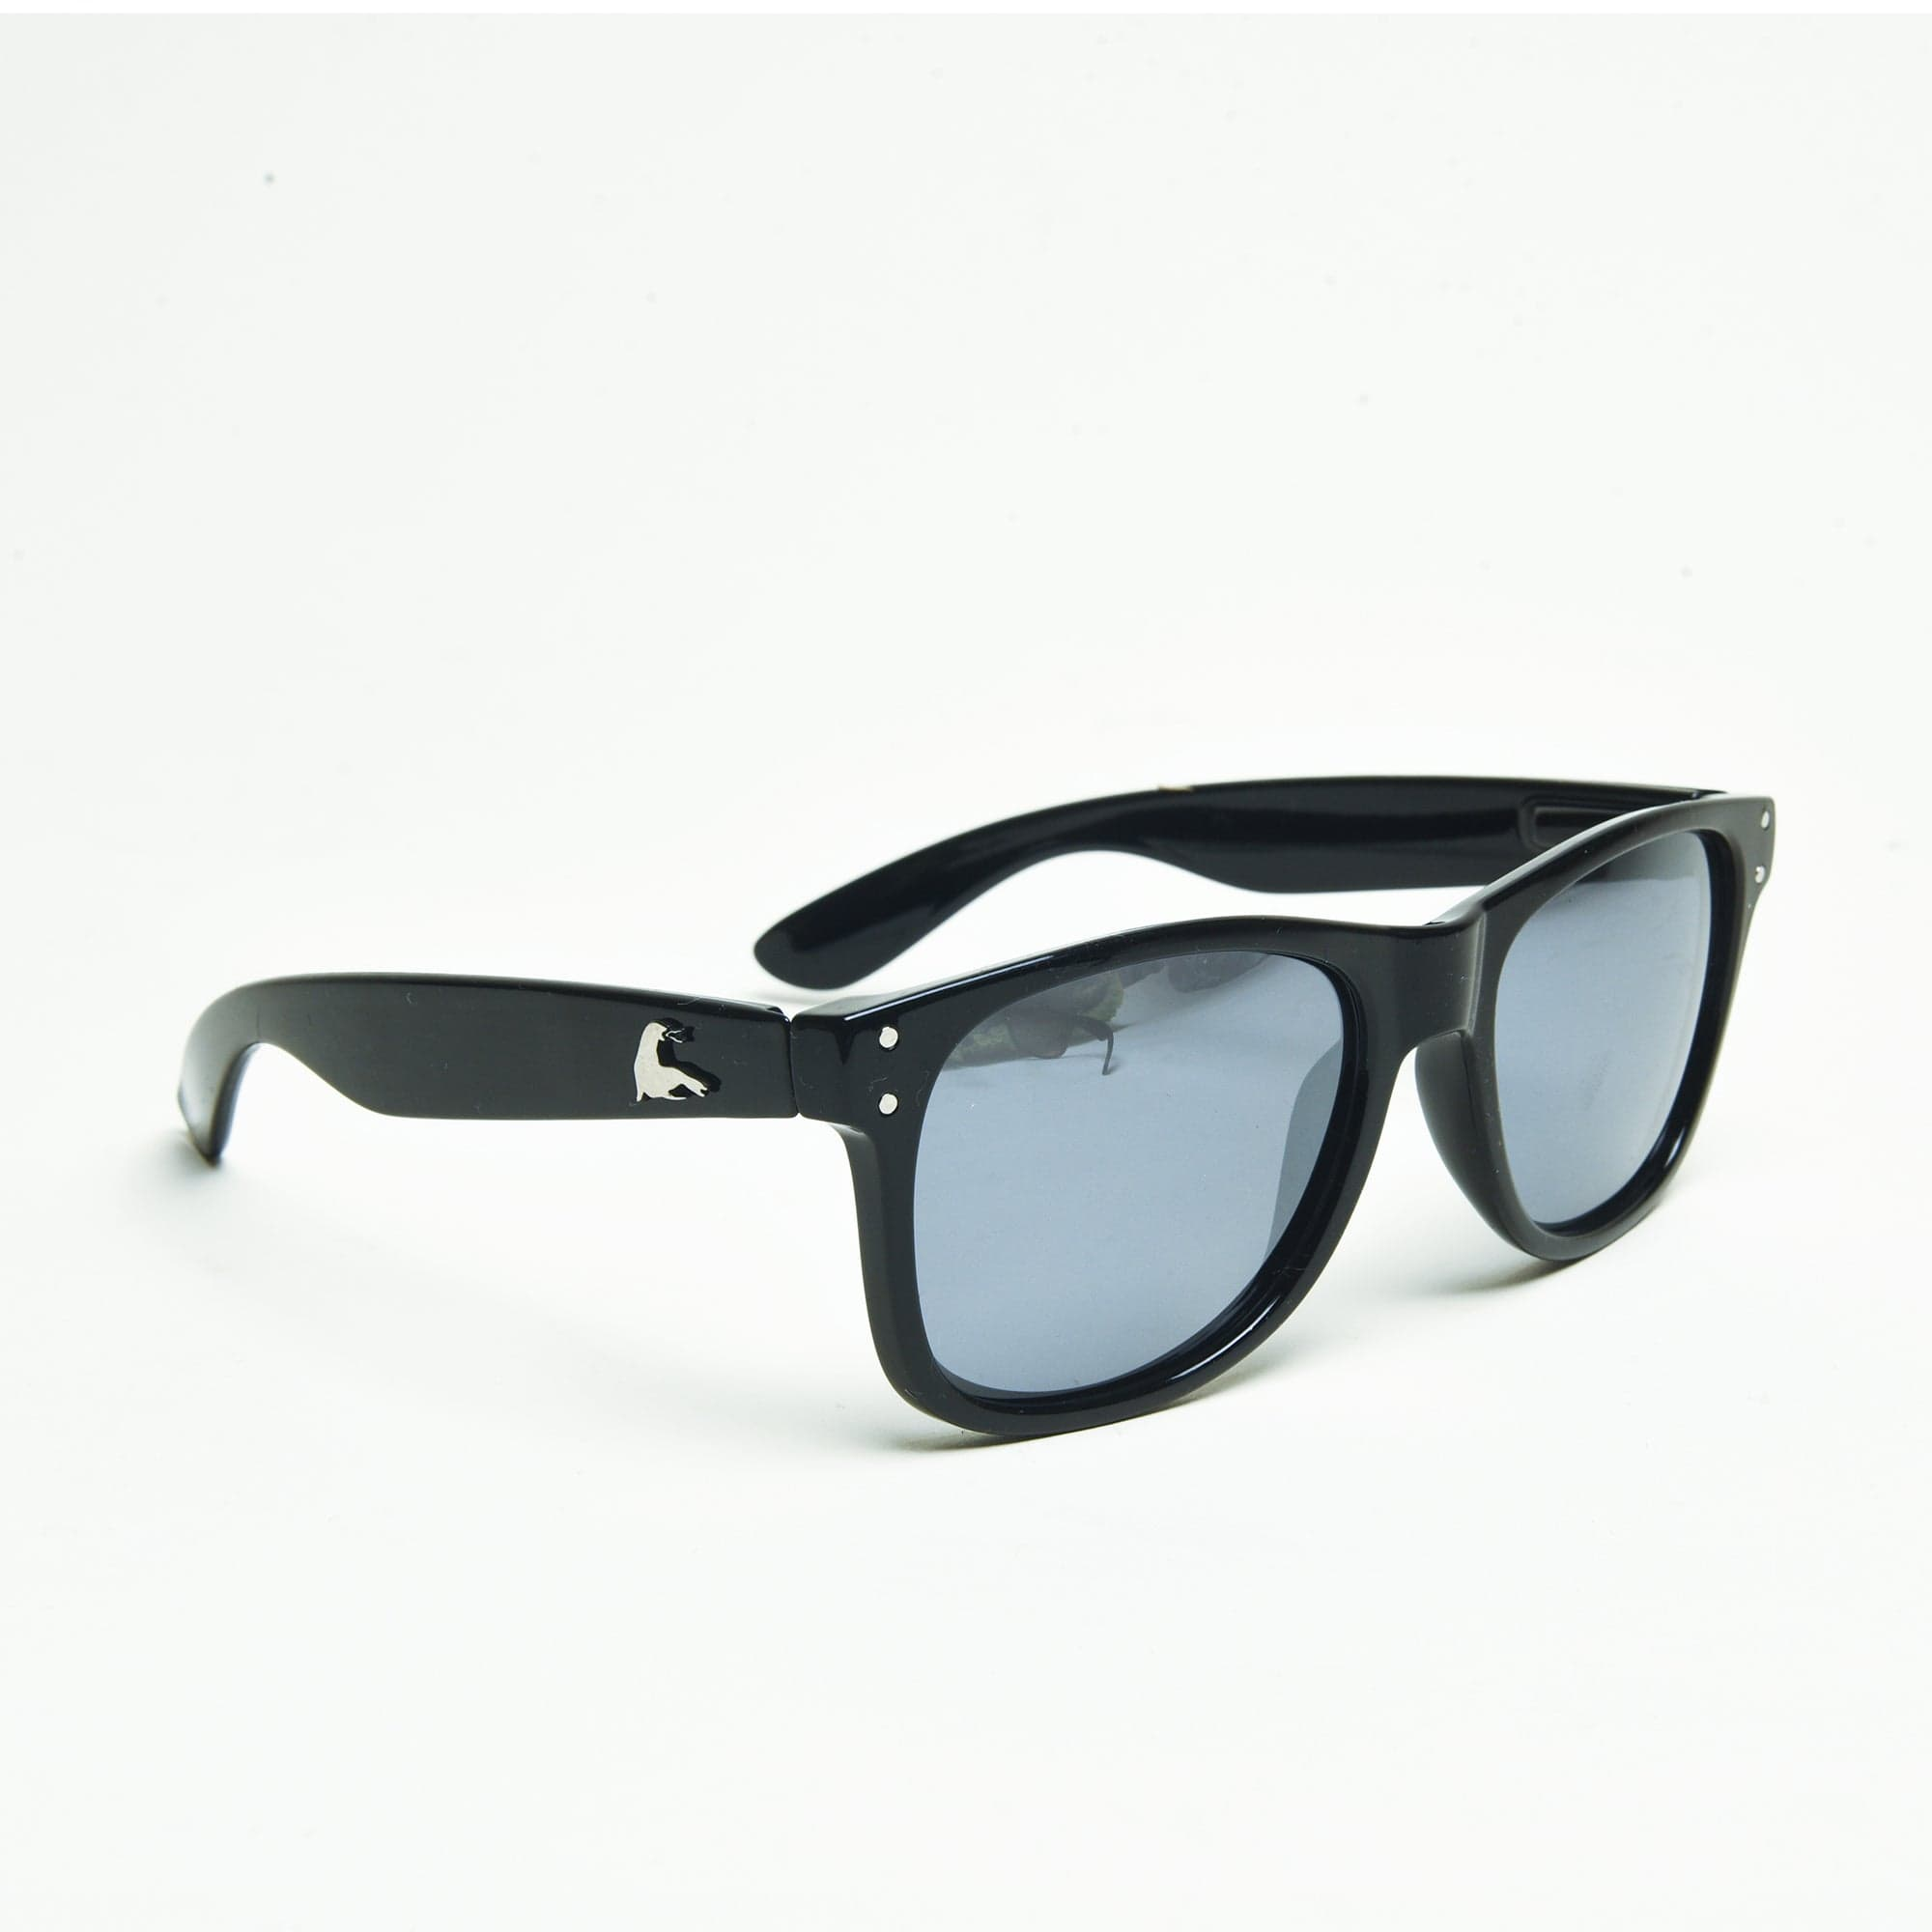 SEE MONSTER POLARIZED SHADES // METALLIC BLACK